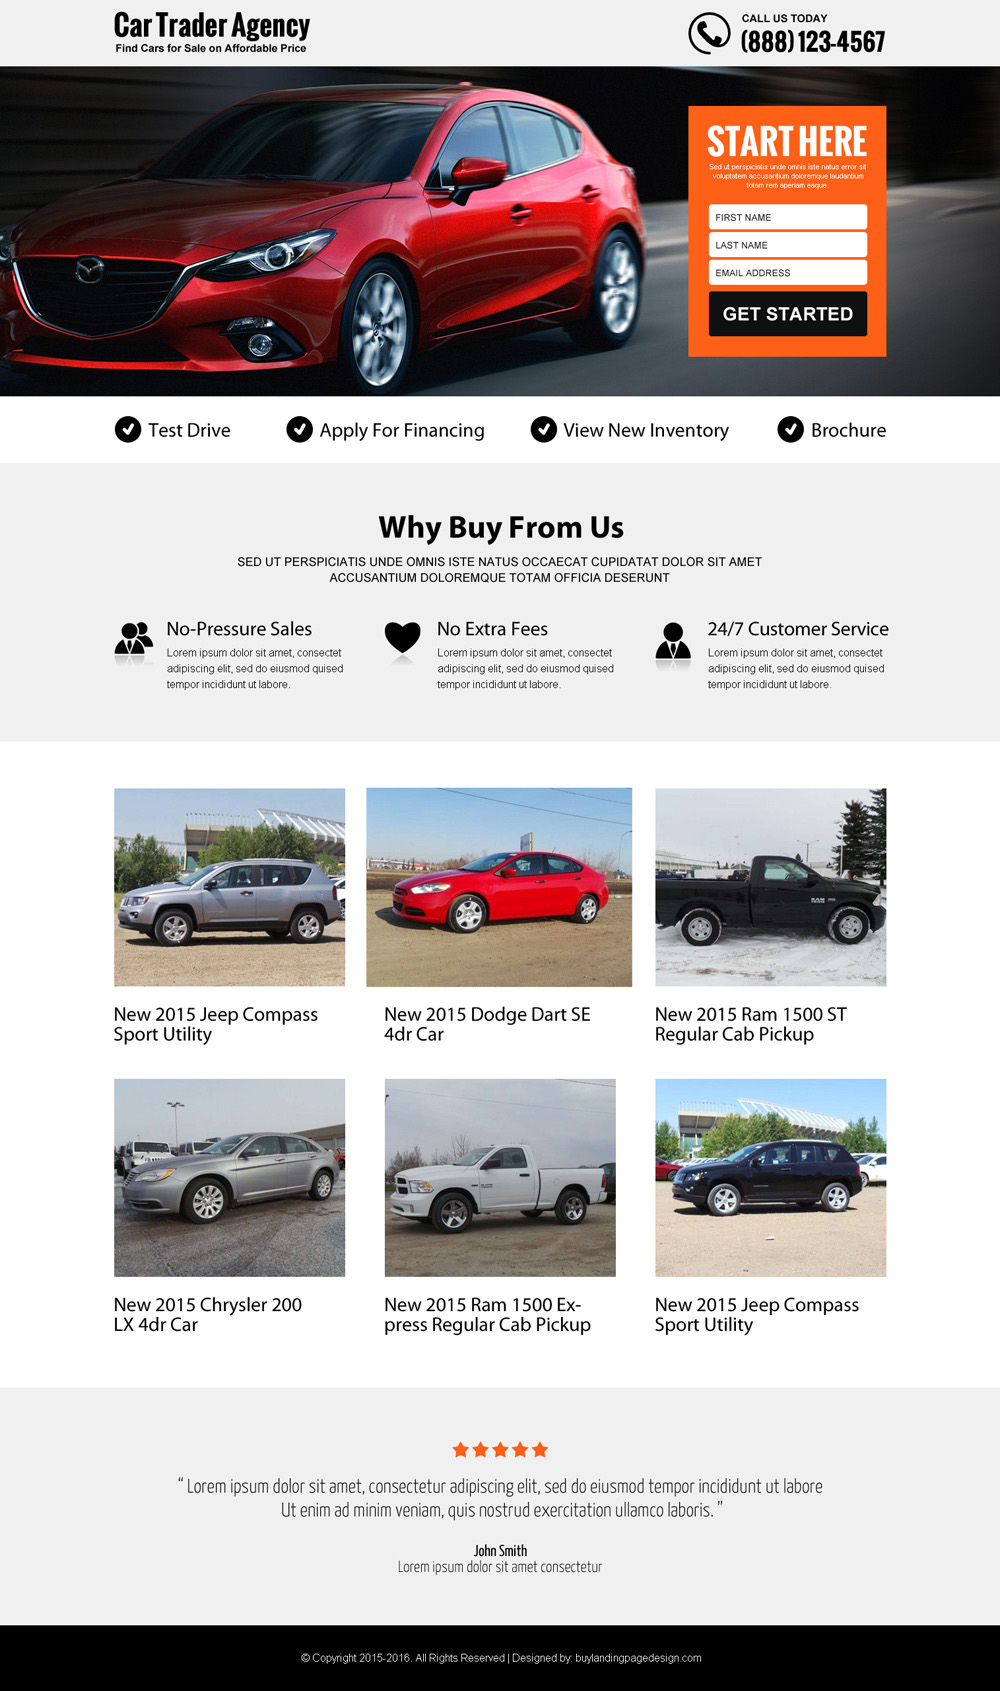 best-car-trading-agency-lead-generation-landing-page-design-003